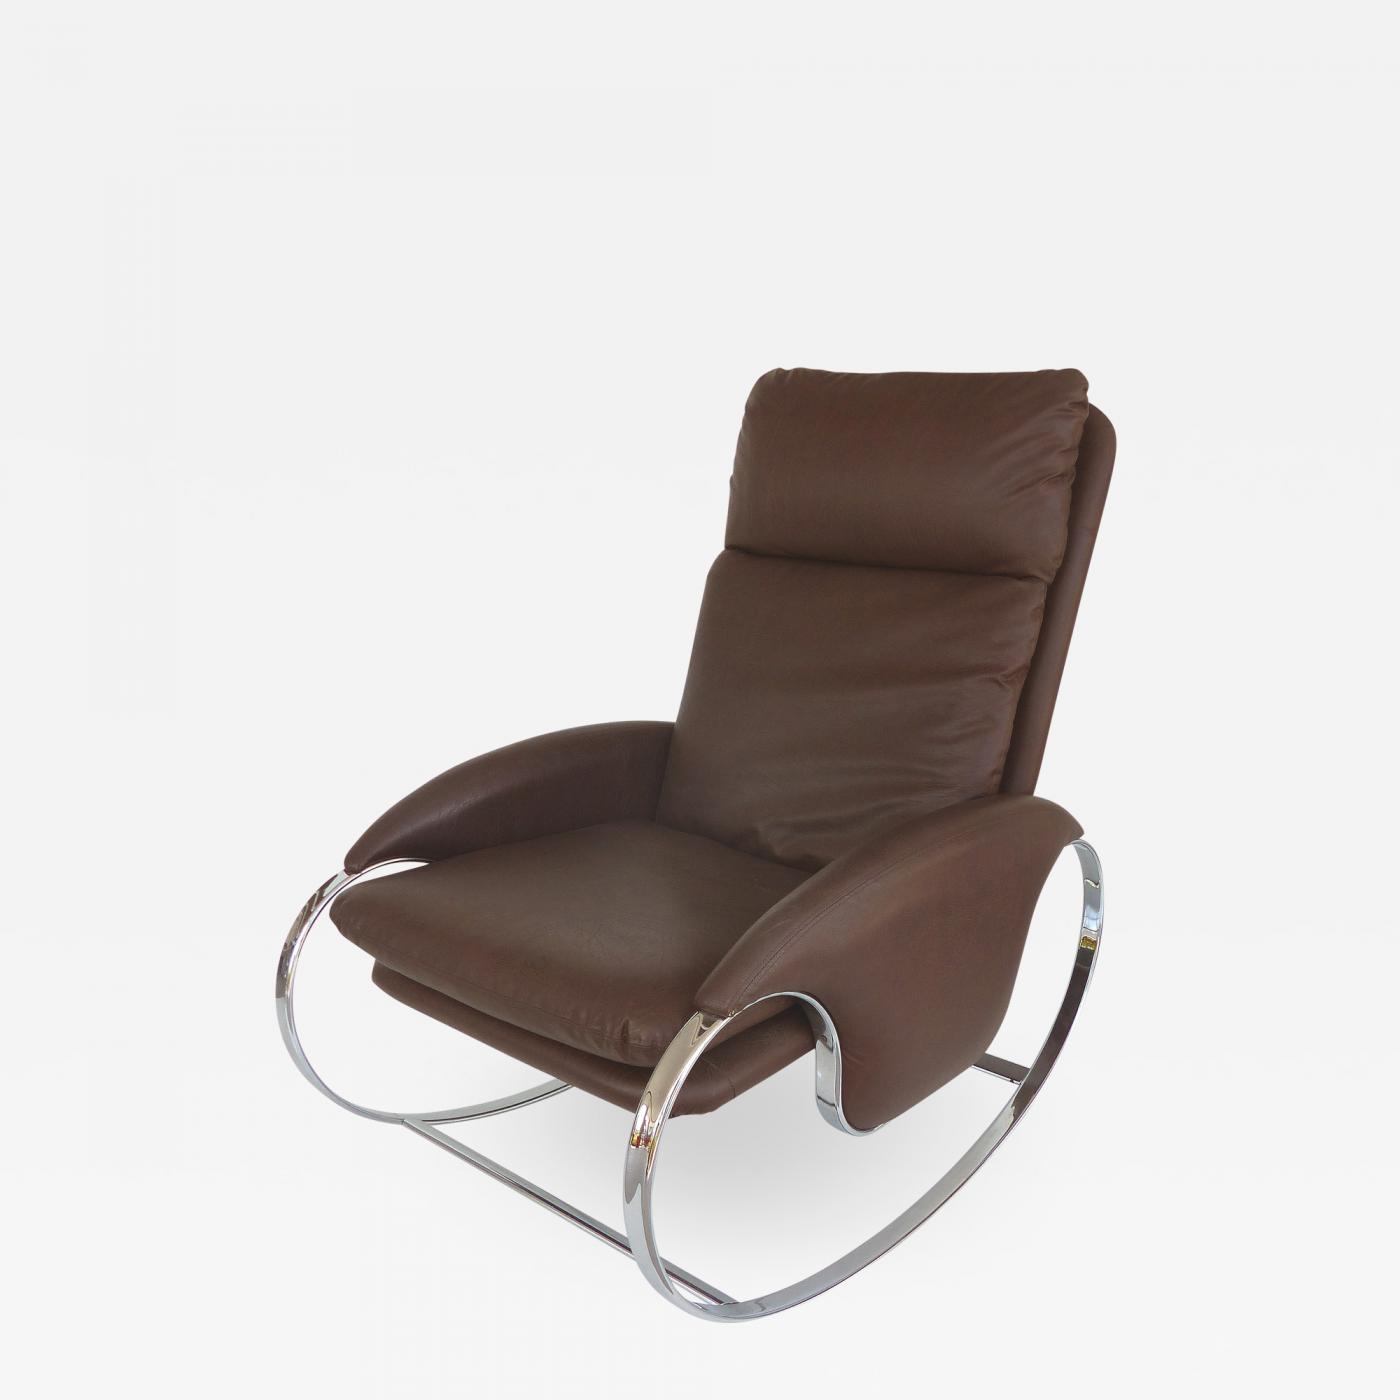 Terrific Guido Faleschini 1970S Guido Faleschini Chrome Rocking Chair Machost Co Dining Chair Design Ideas Machostcouk